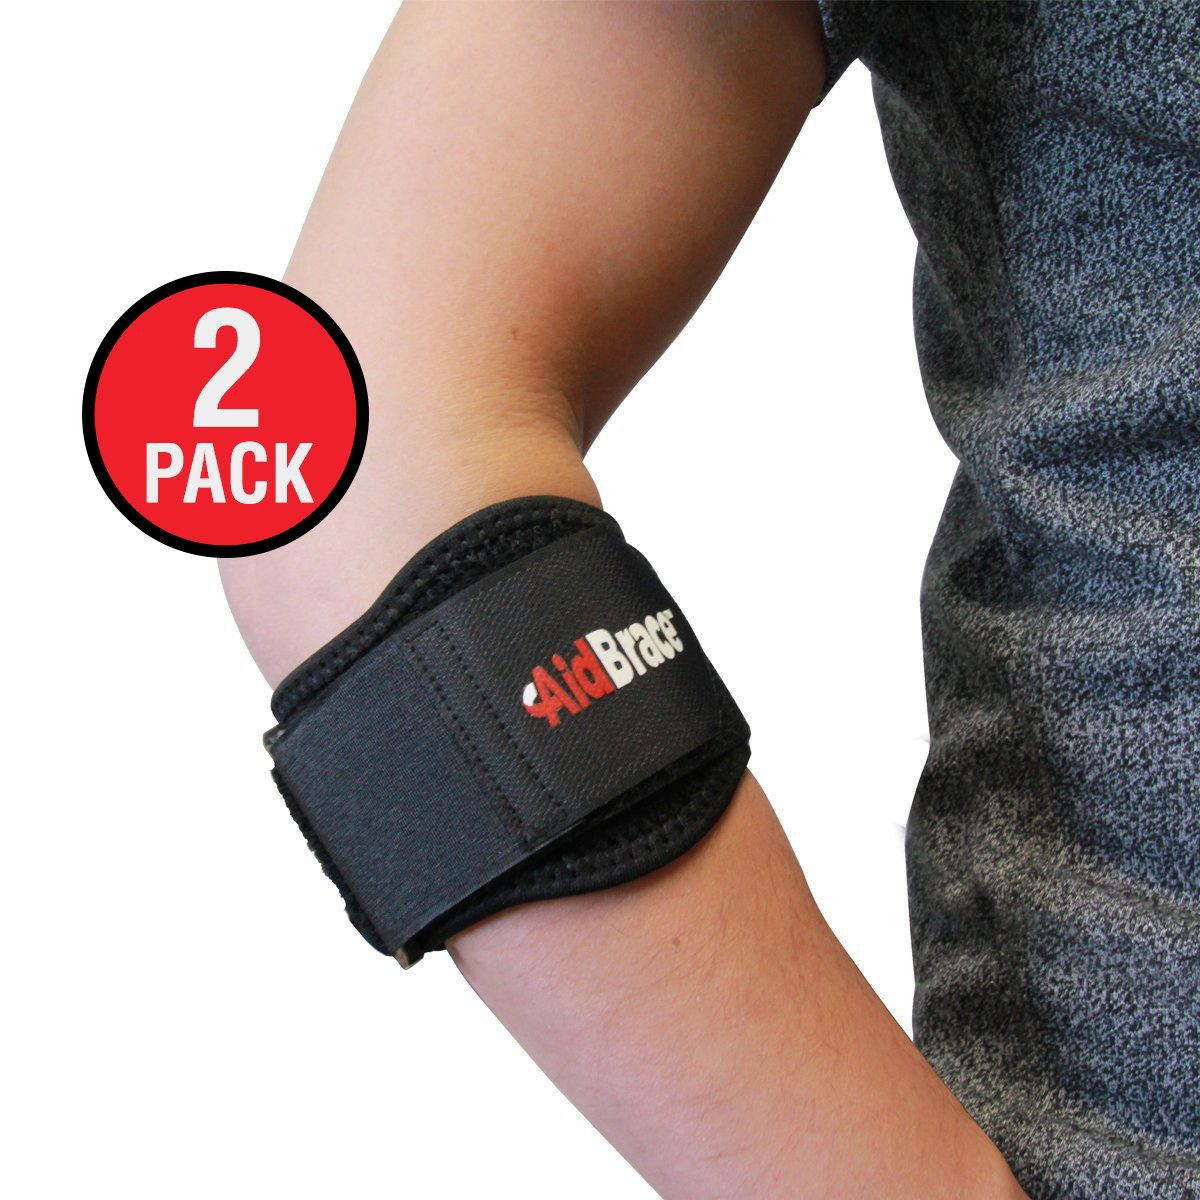 AidBrace Tennis and Golfers Elbow Support Brace (PAIR), with Padded Gel Pad for Compression, Helps with Muscle and Joint Pain Relief